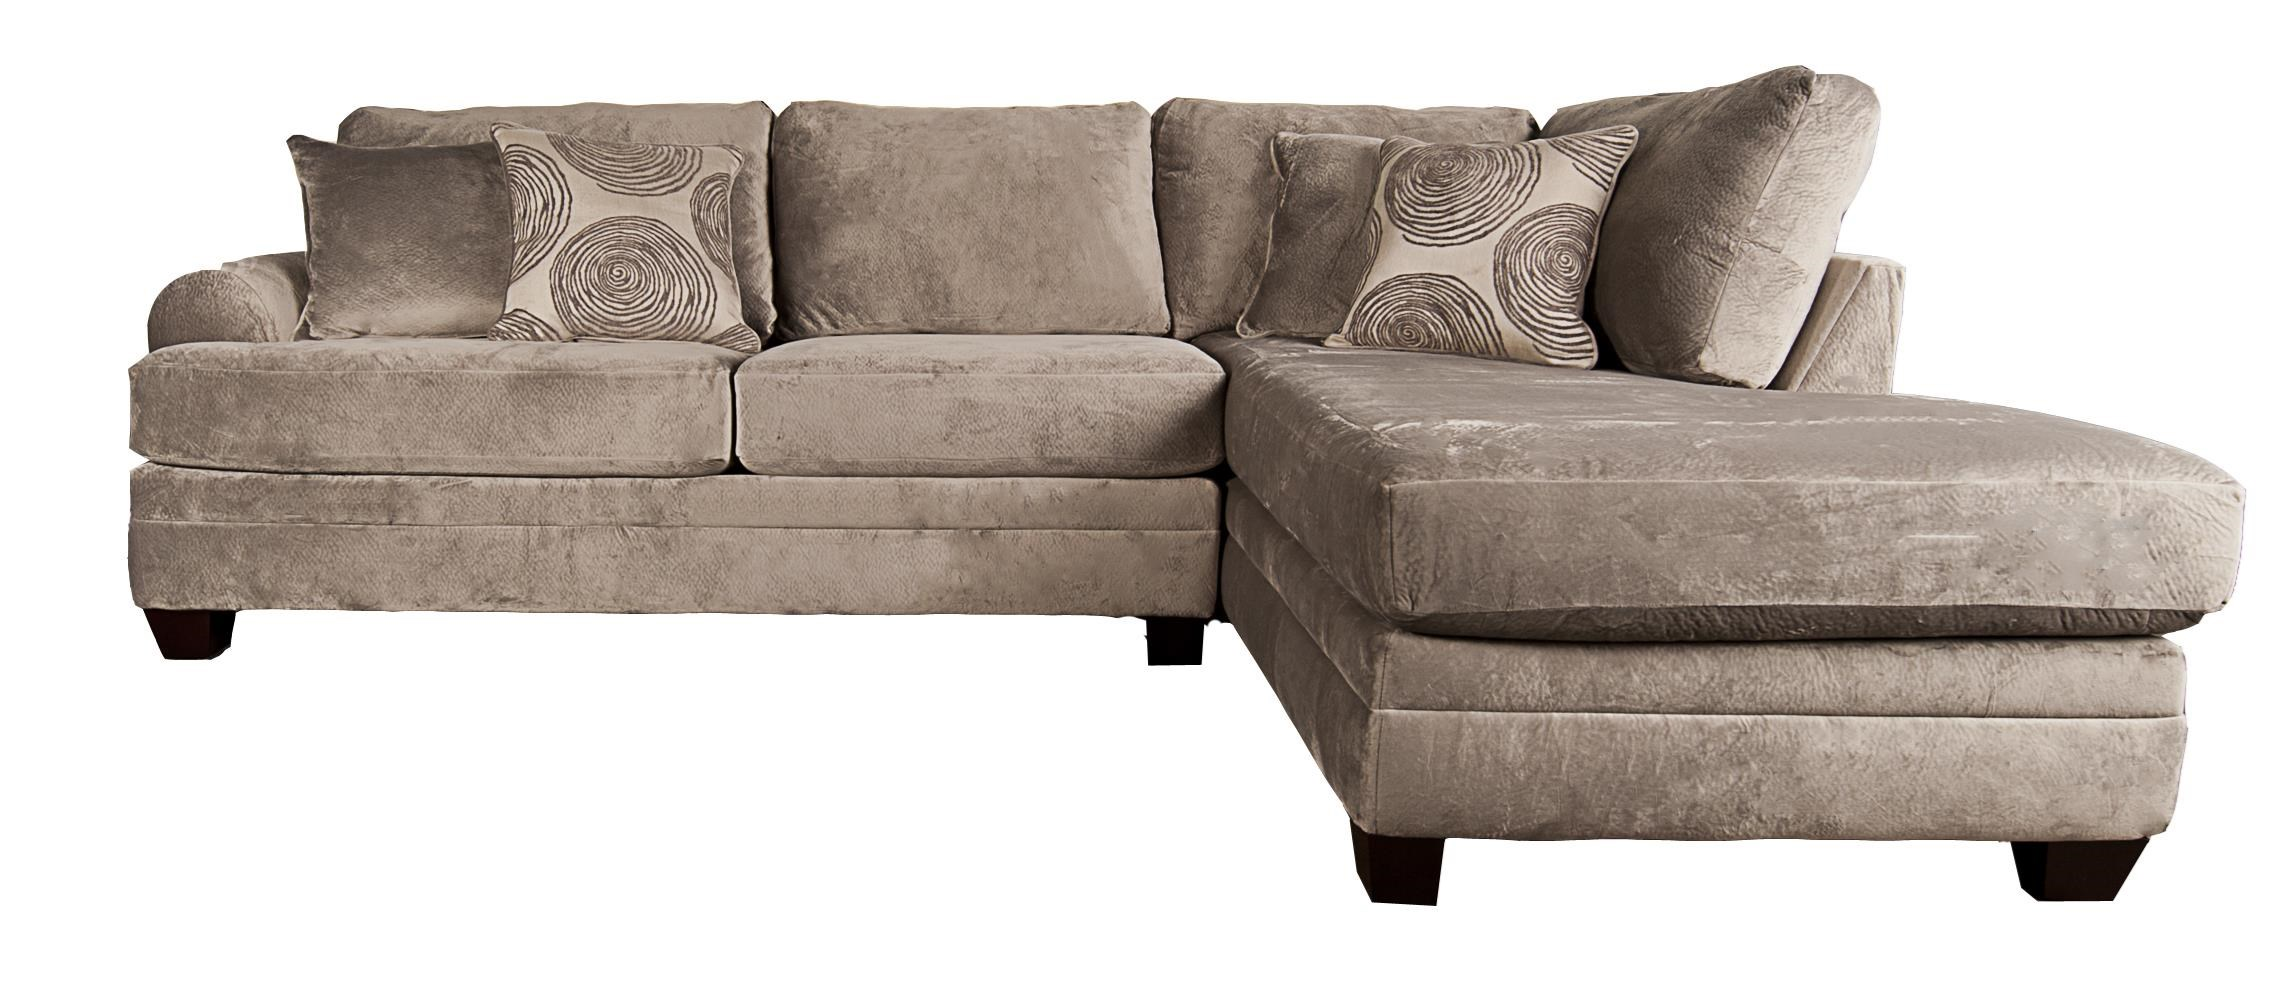 Agustus Sectional Sofa with Accent Pillows by Albany at Morris Home